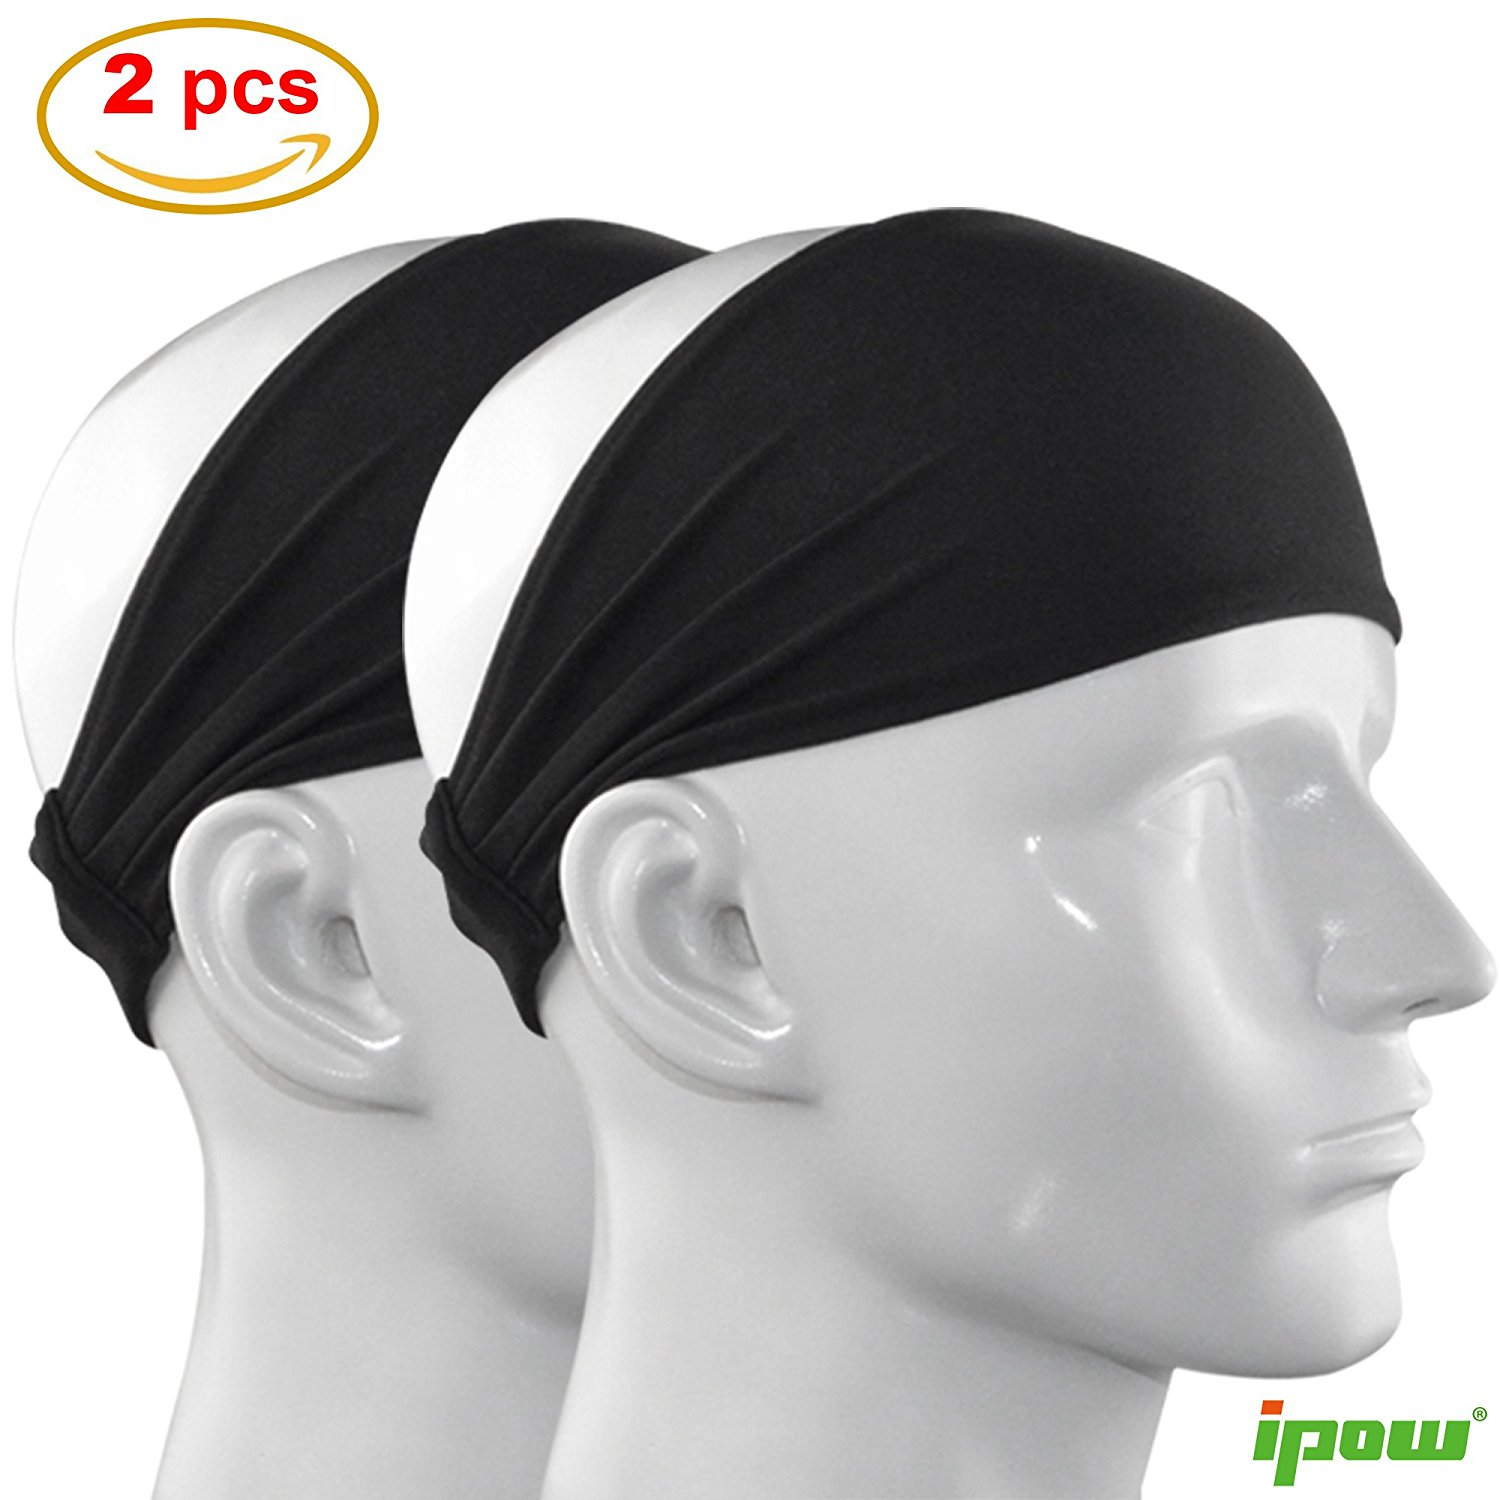 IPOW Sports Headband & Sweatband Absorbing Non-slip Head Band Elastic Hair Band for Women & Men Athletic Running, Working Out, Moisture Wicking, 4 inches,2 Pack, Green Monday / Christmas Day Deal